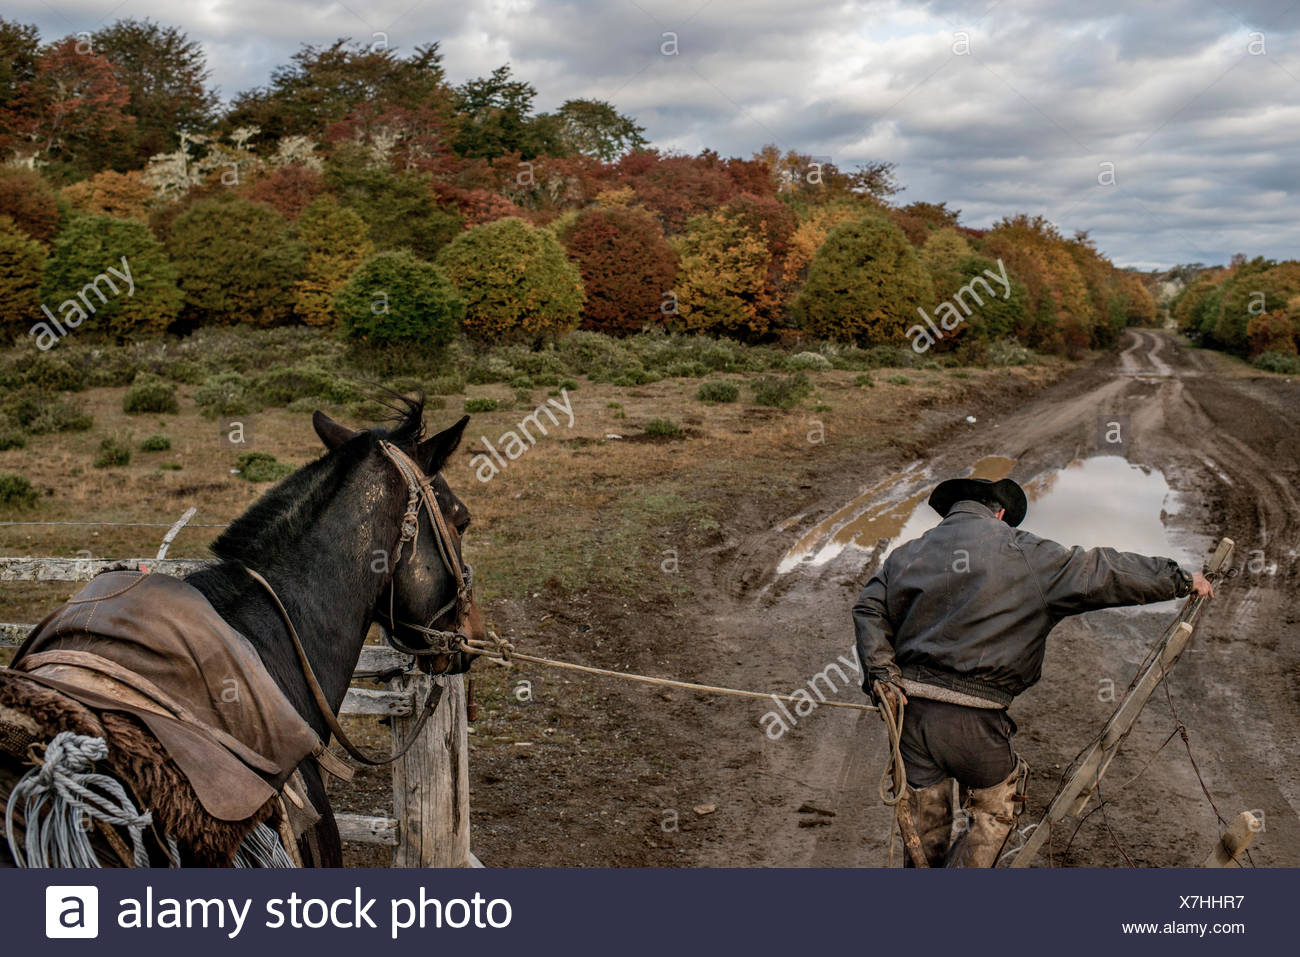 A bagualero or cowboy, who captures feral livestock, en route to inspect traps and set some more. Stock Photo